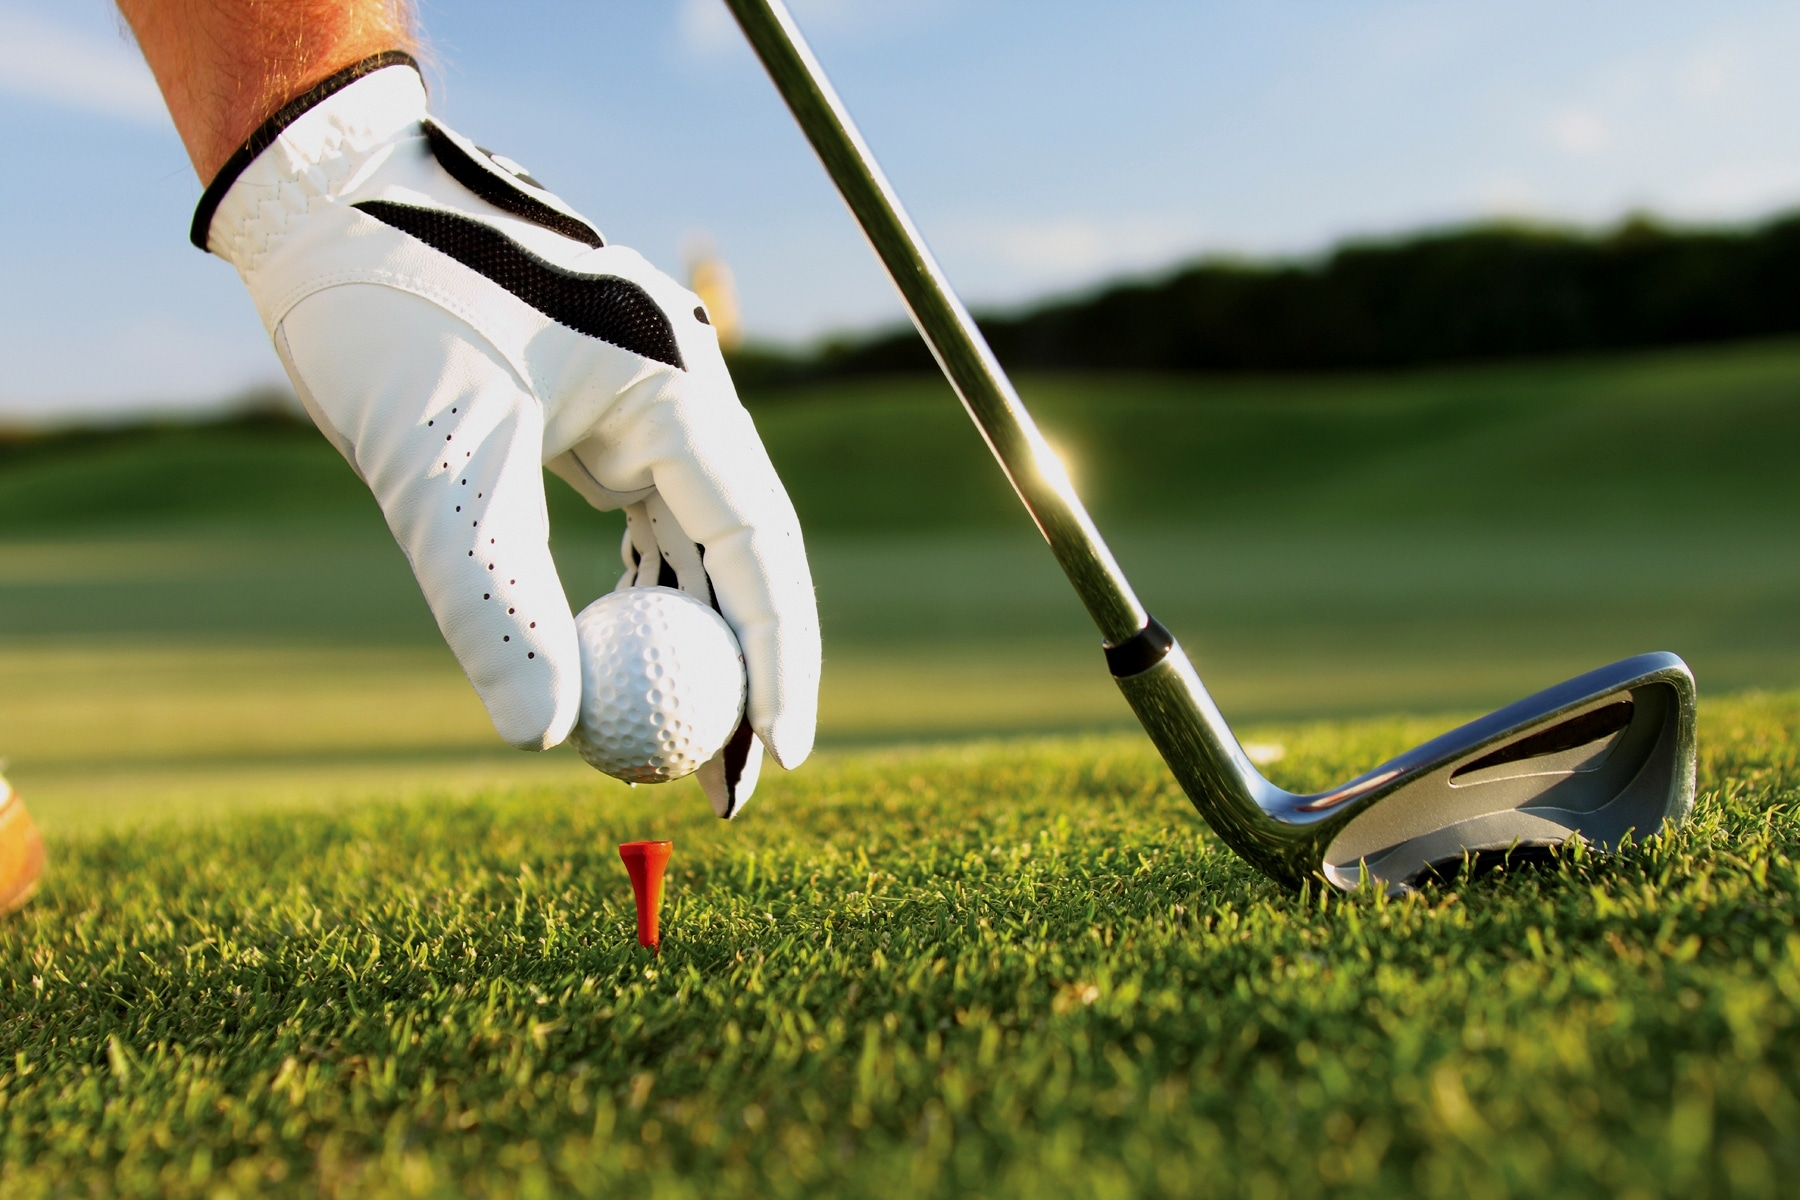 Golfer places golf ball on tee practicing for the Third Annual Community Foundation of Upper St. Clair Charity Golf Invitational that will be held on September 24, 2018, Golf Sponsors and Foursomes Wanted!